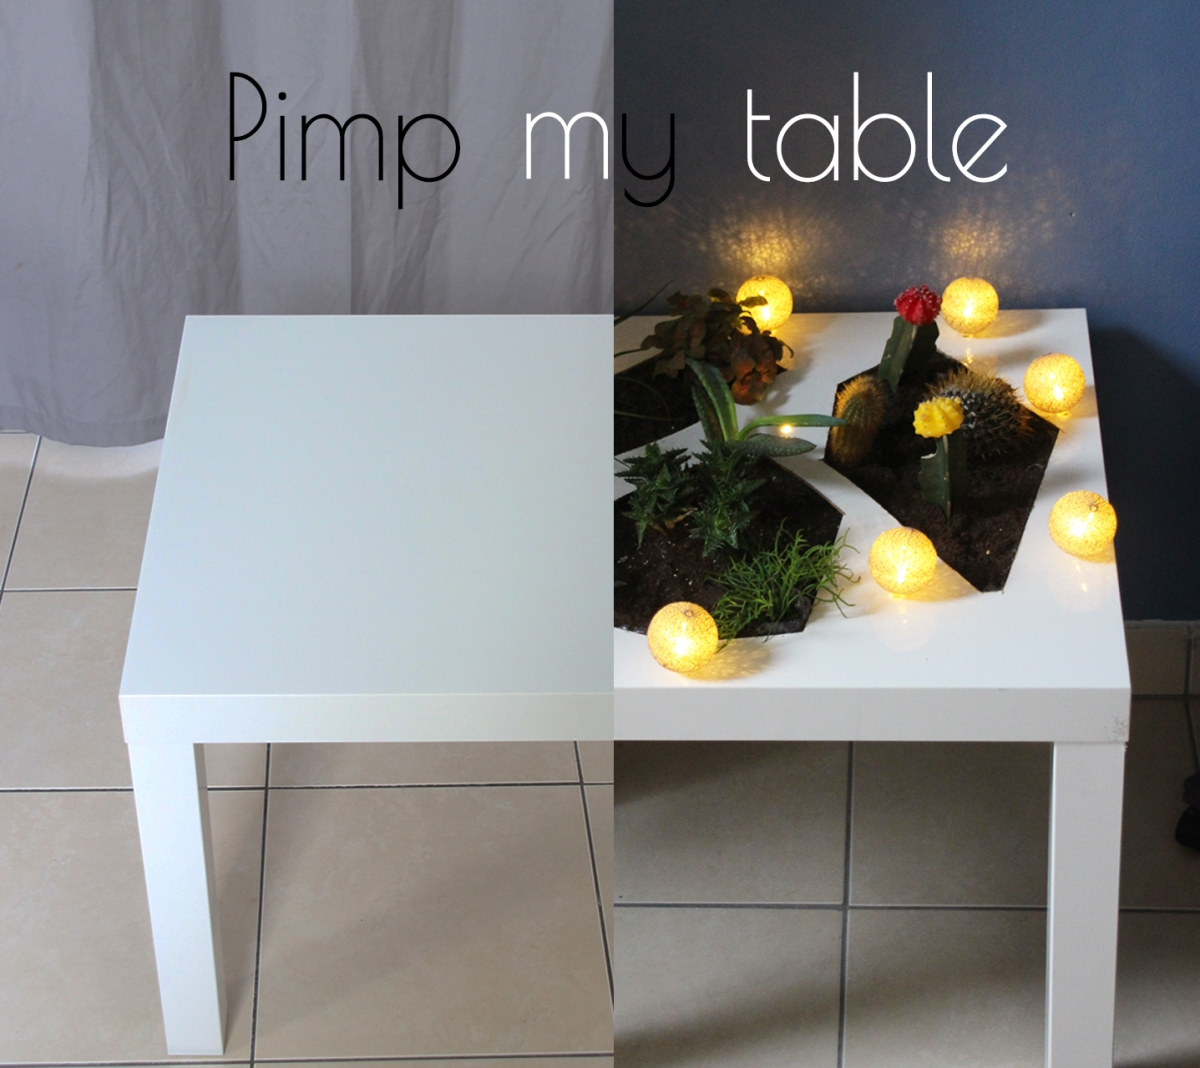 Pimp my table !